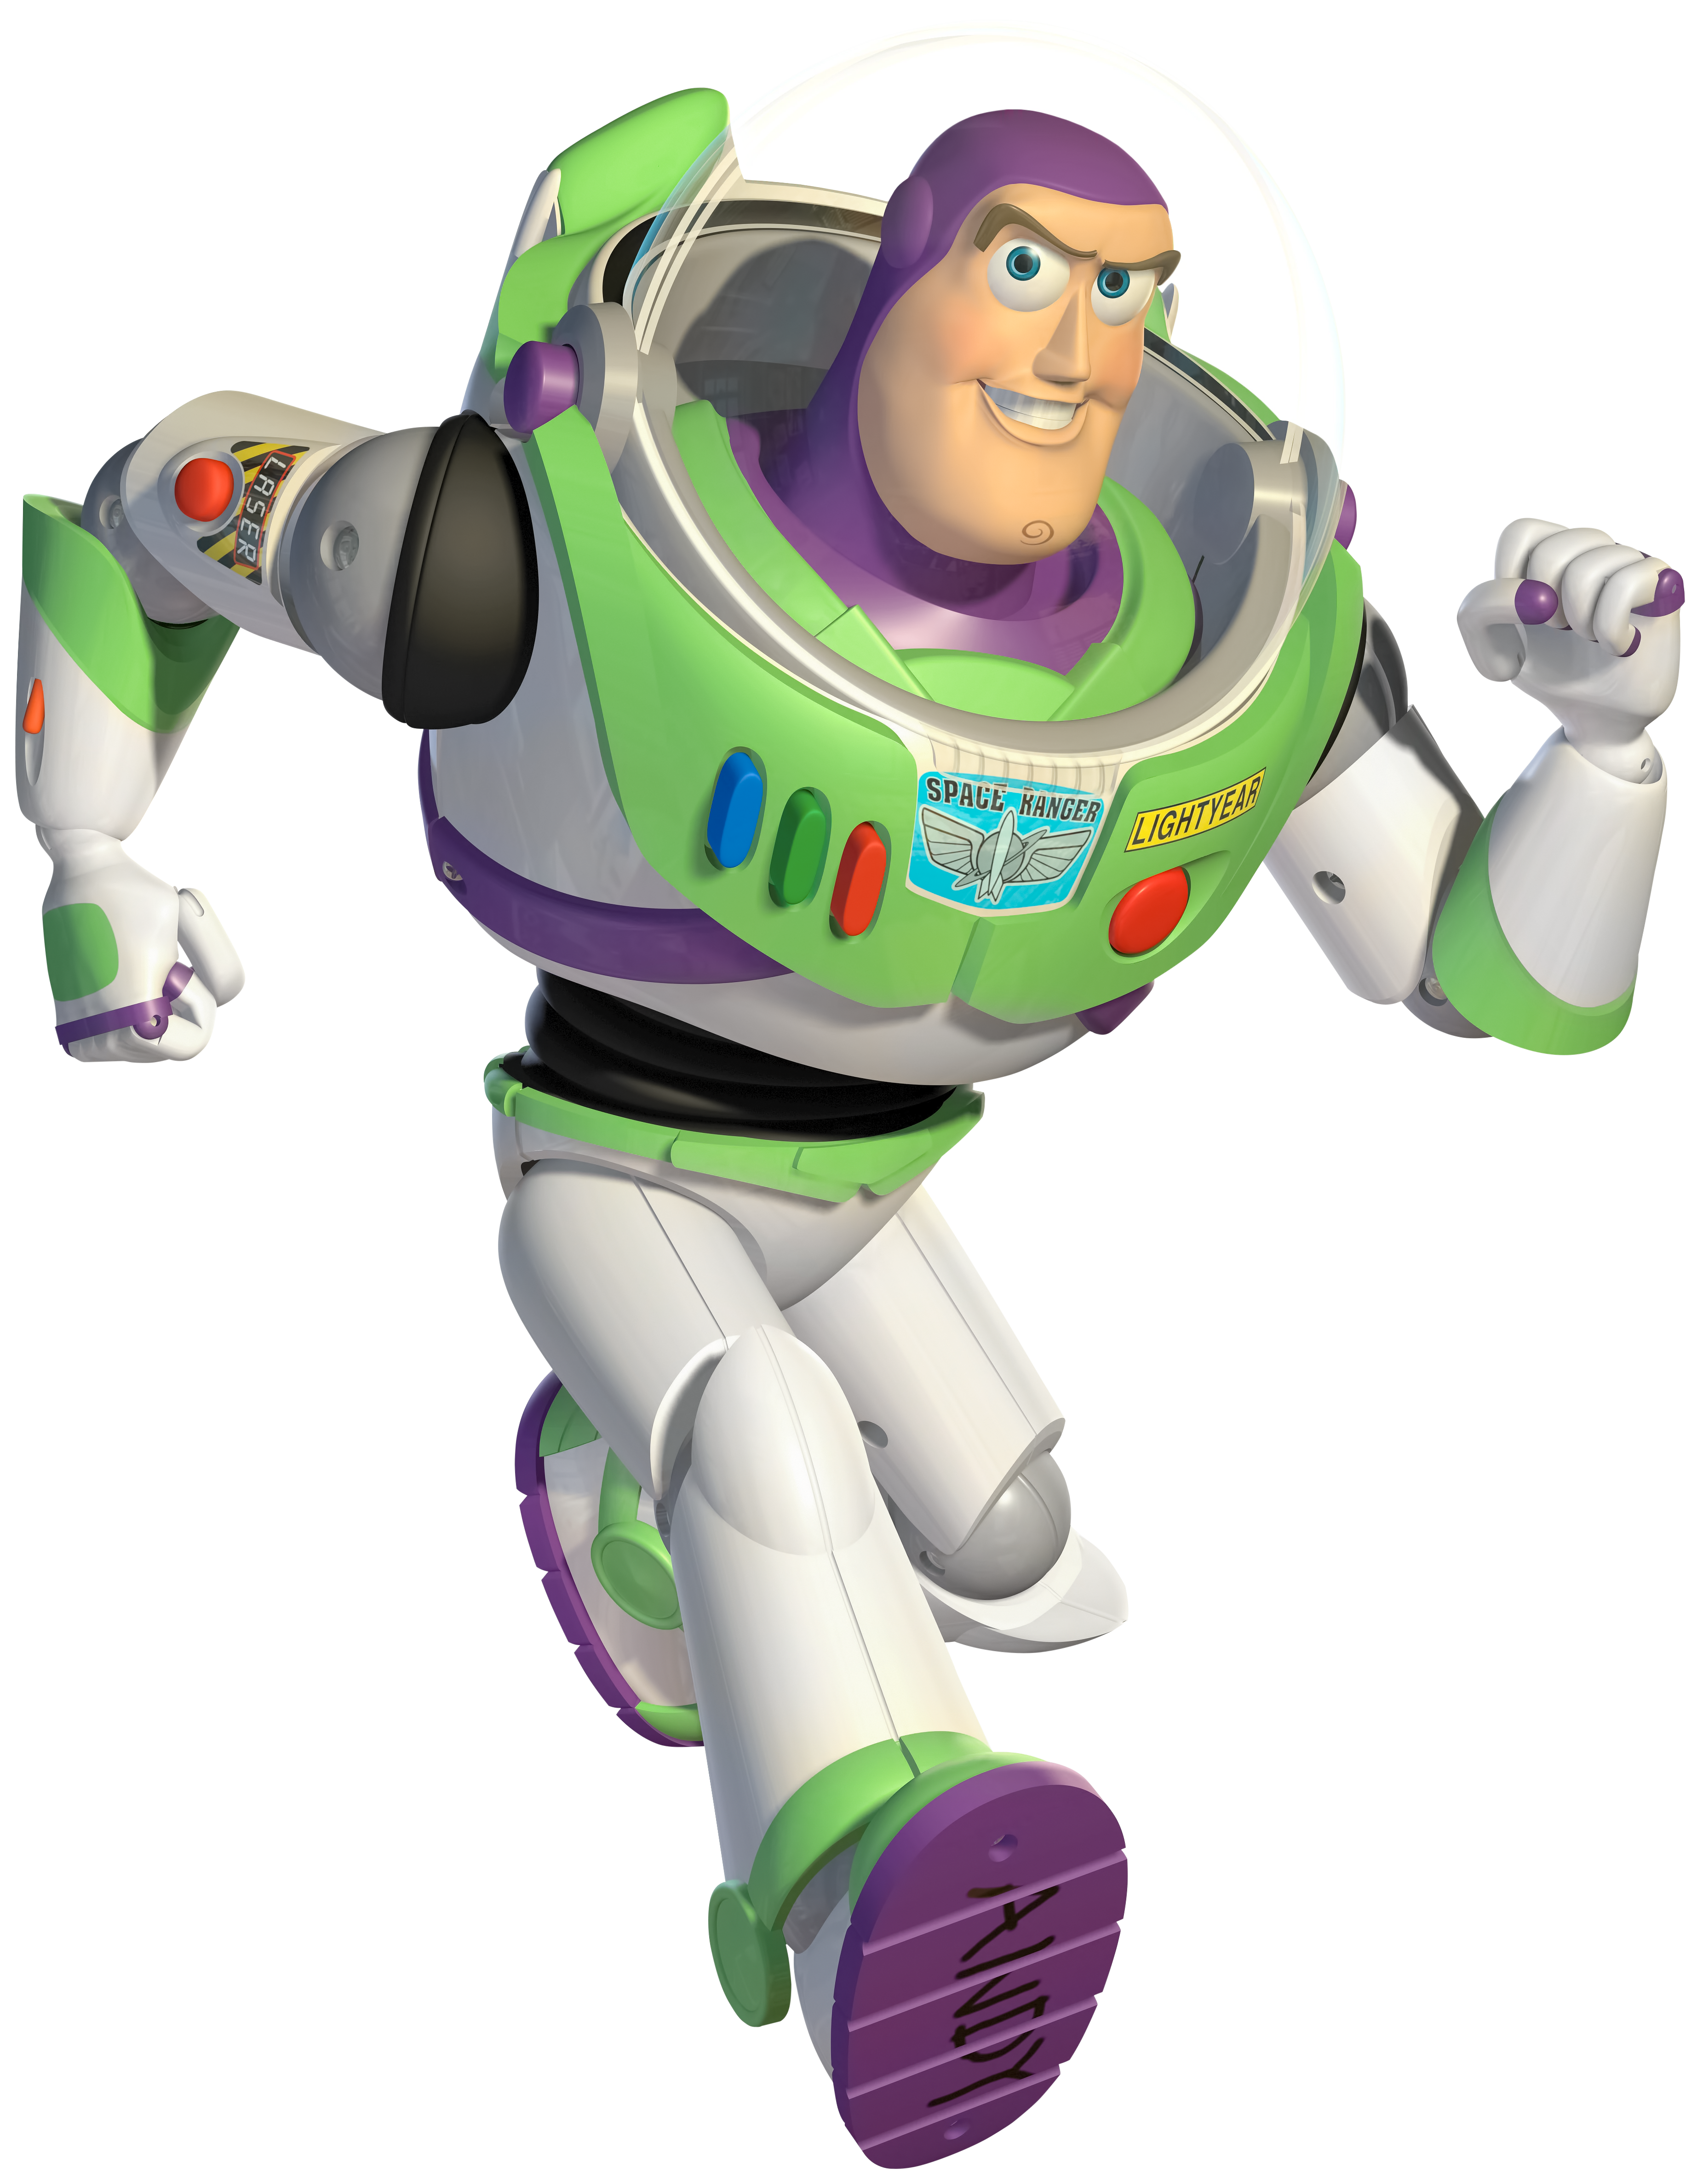 Toy Story Buzz Lightyear PNG Clip Art Image.